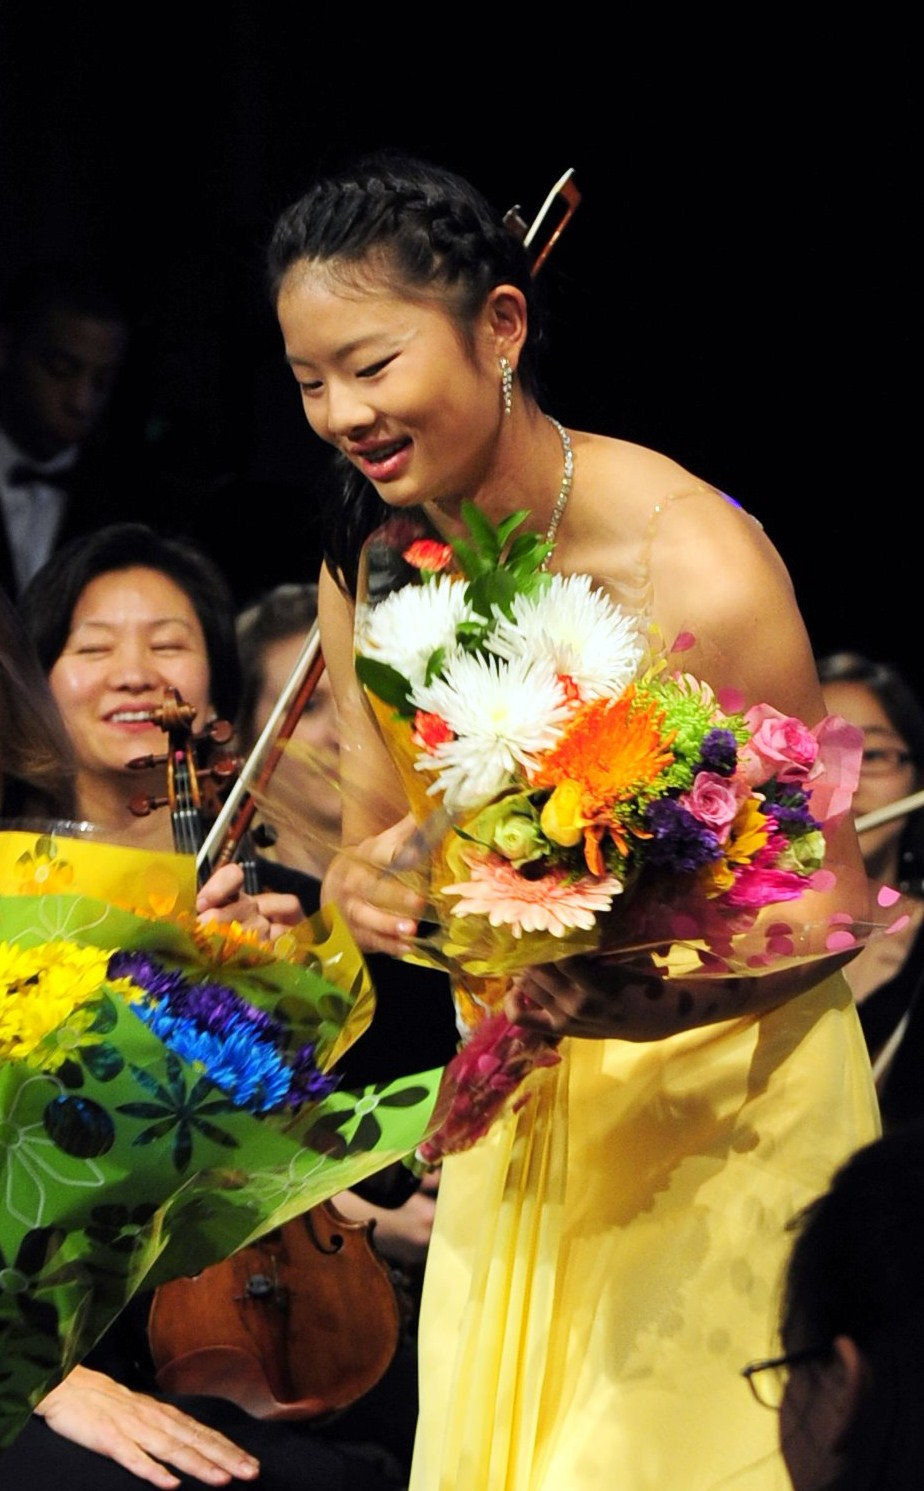 Penny Luan receiving lots of flowers from friends